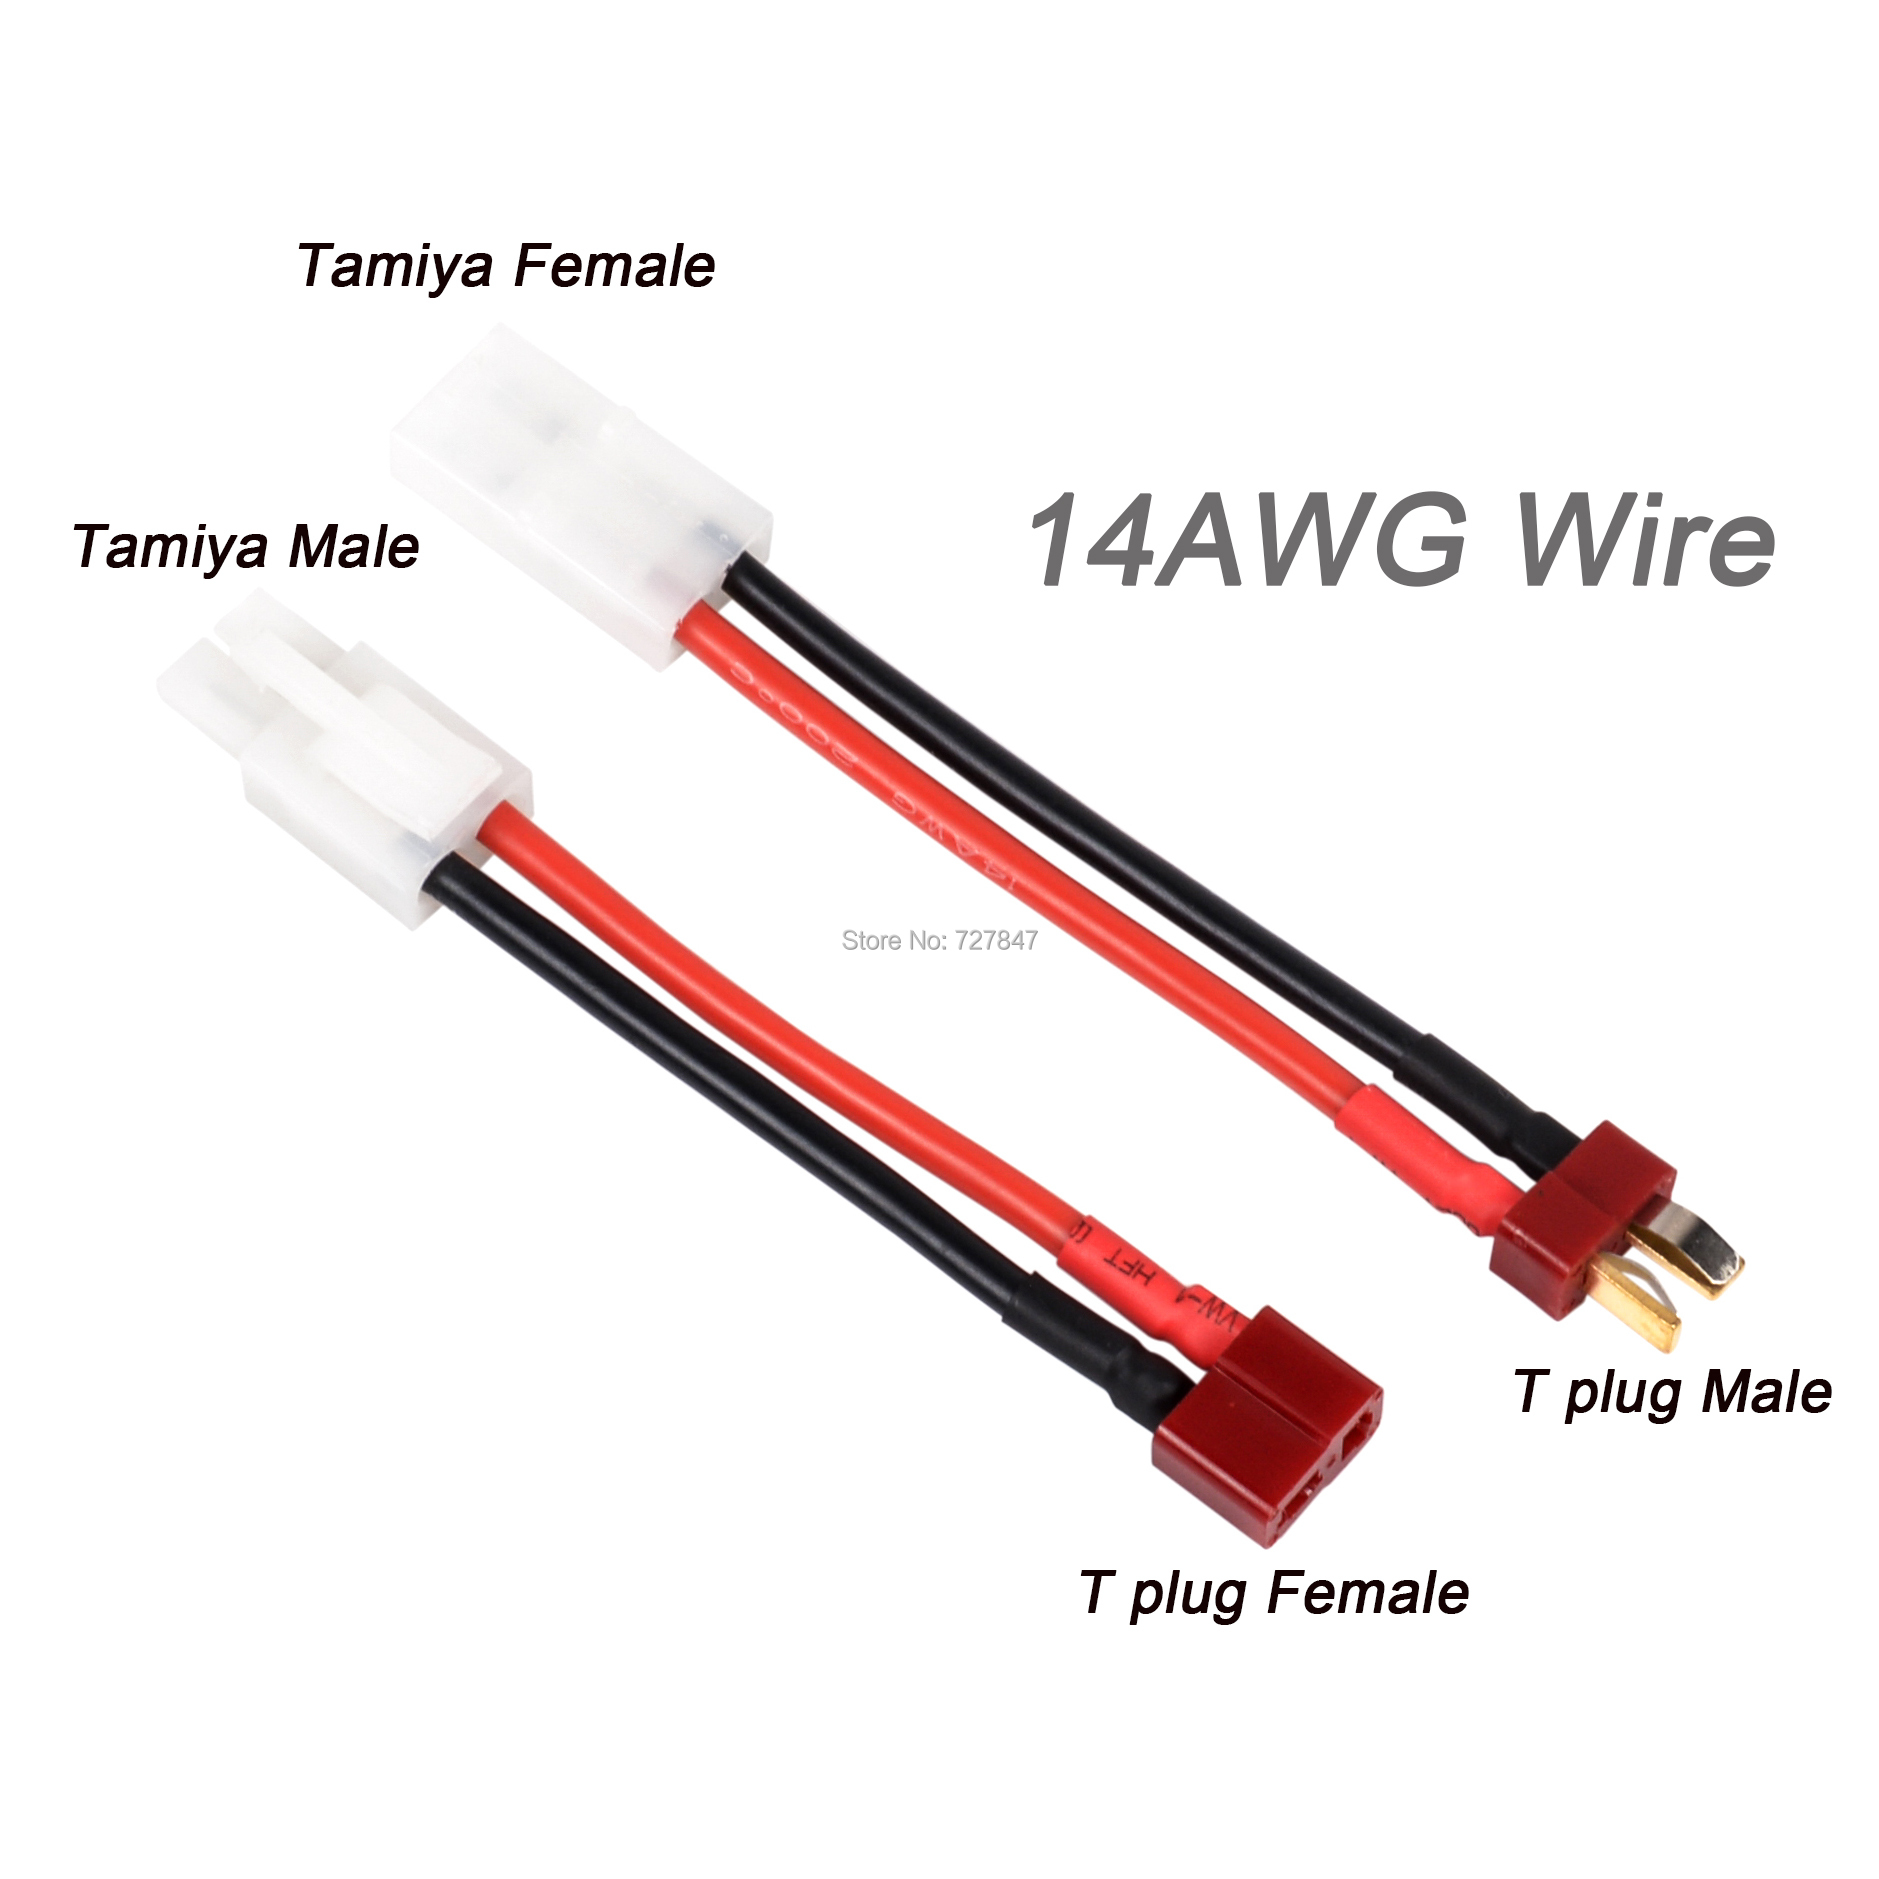 RC Parts Plug Cable 8cm T Plug Female / Male to Tamiya Male / Female Adapter Cable 14AWG Wire RC Accessories car For FPV Drone